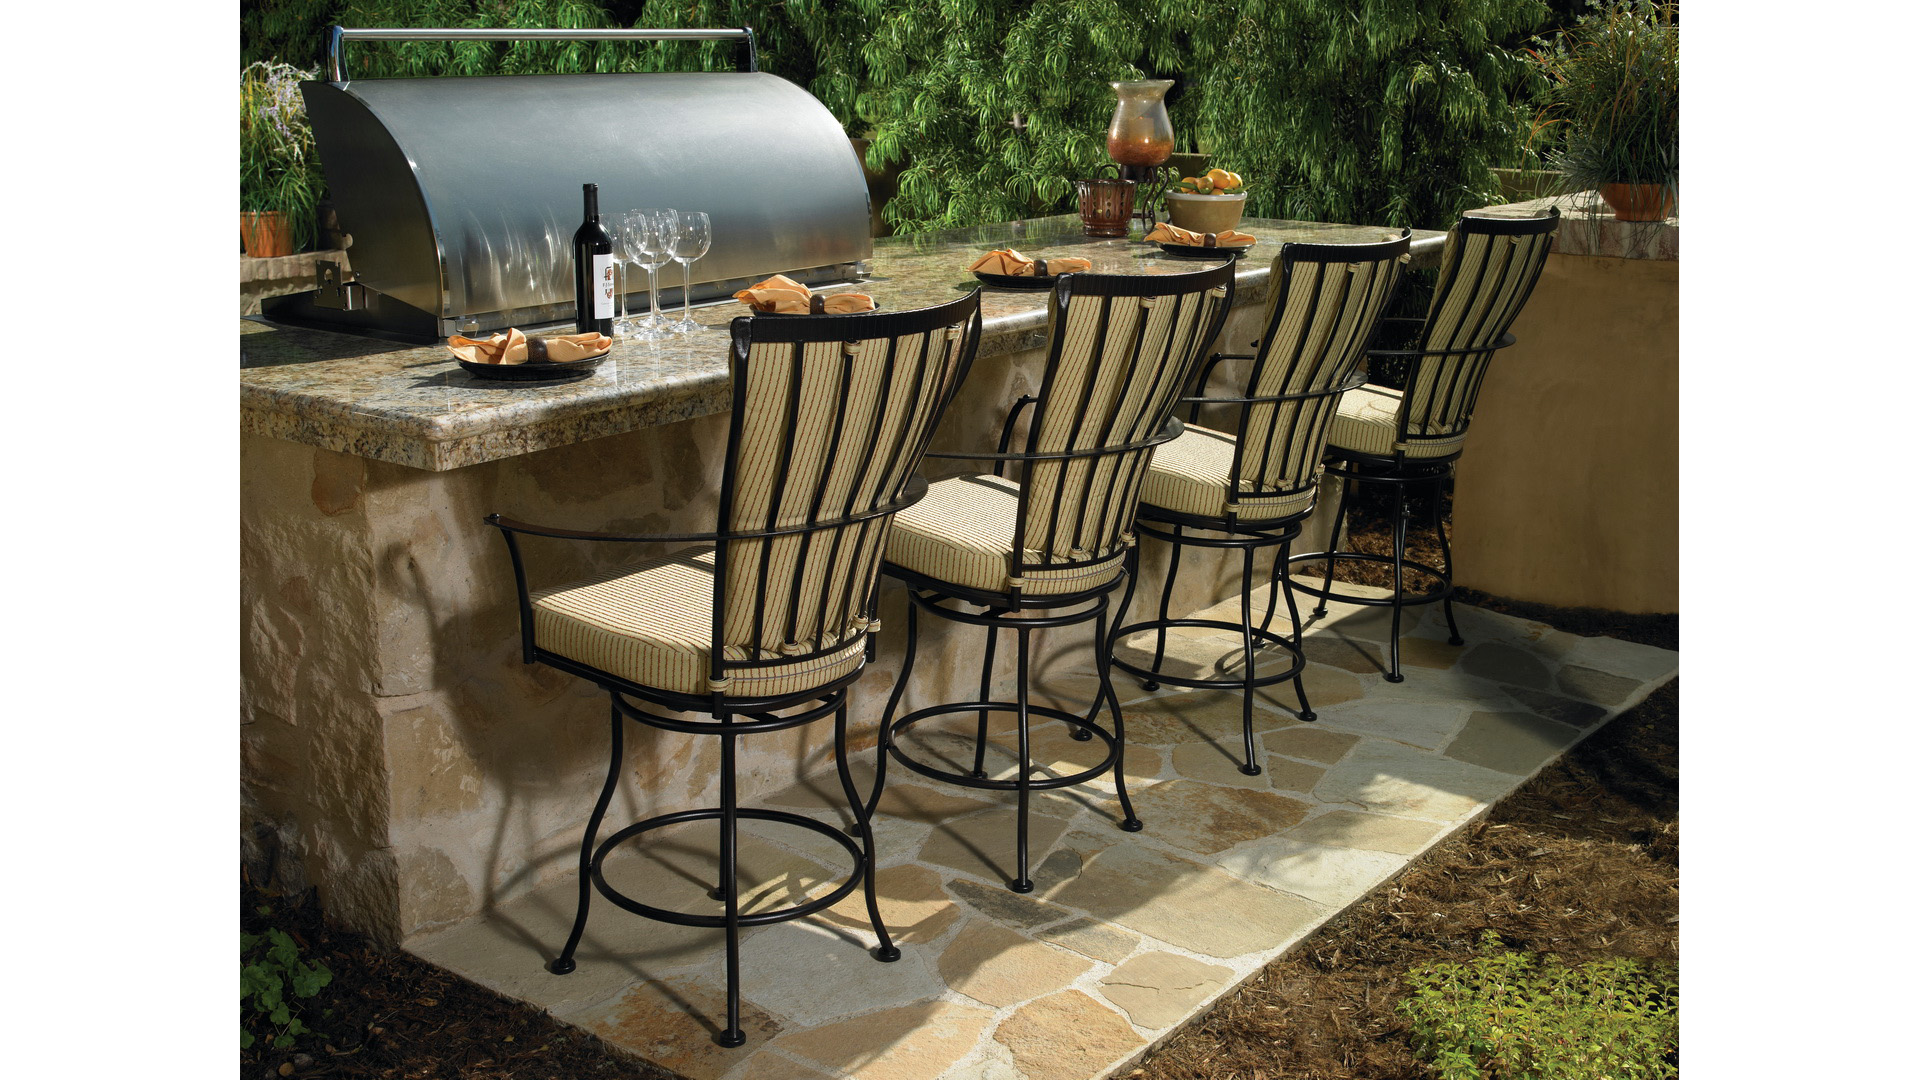 Patio Furniture Pasadena Ca Monterra Fishbecks Patio Furniture Store Pasadena Brown Pasadena